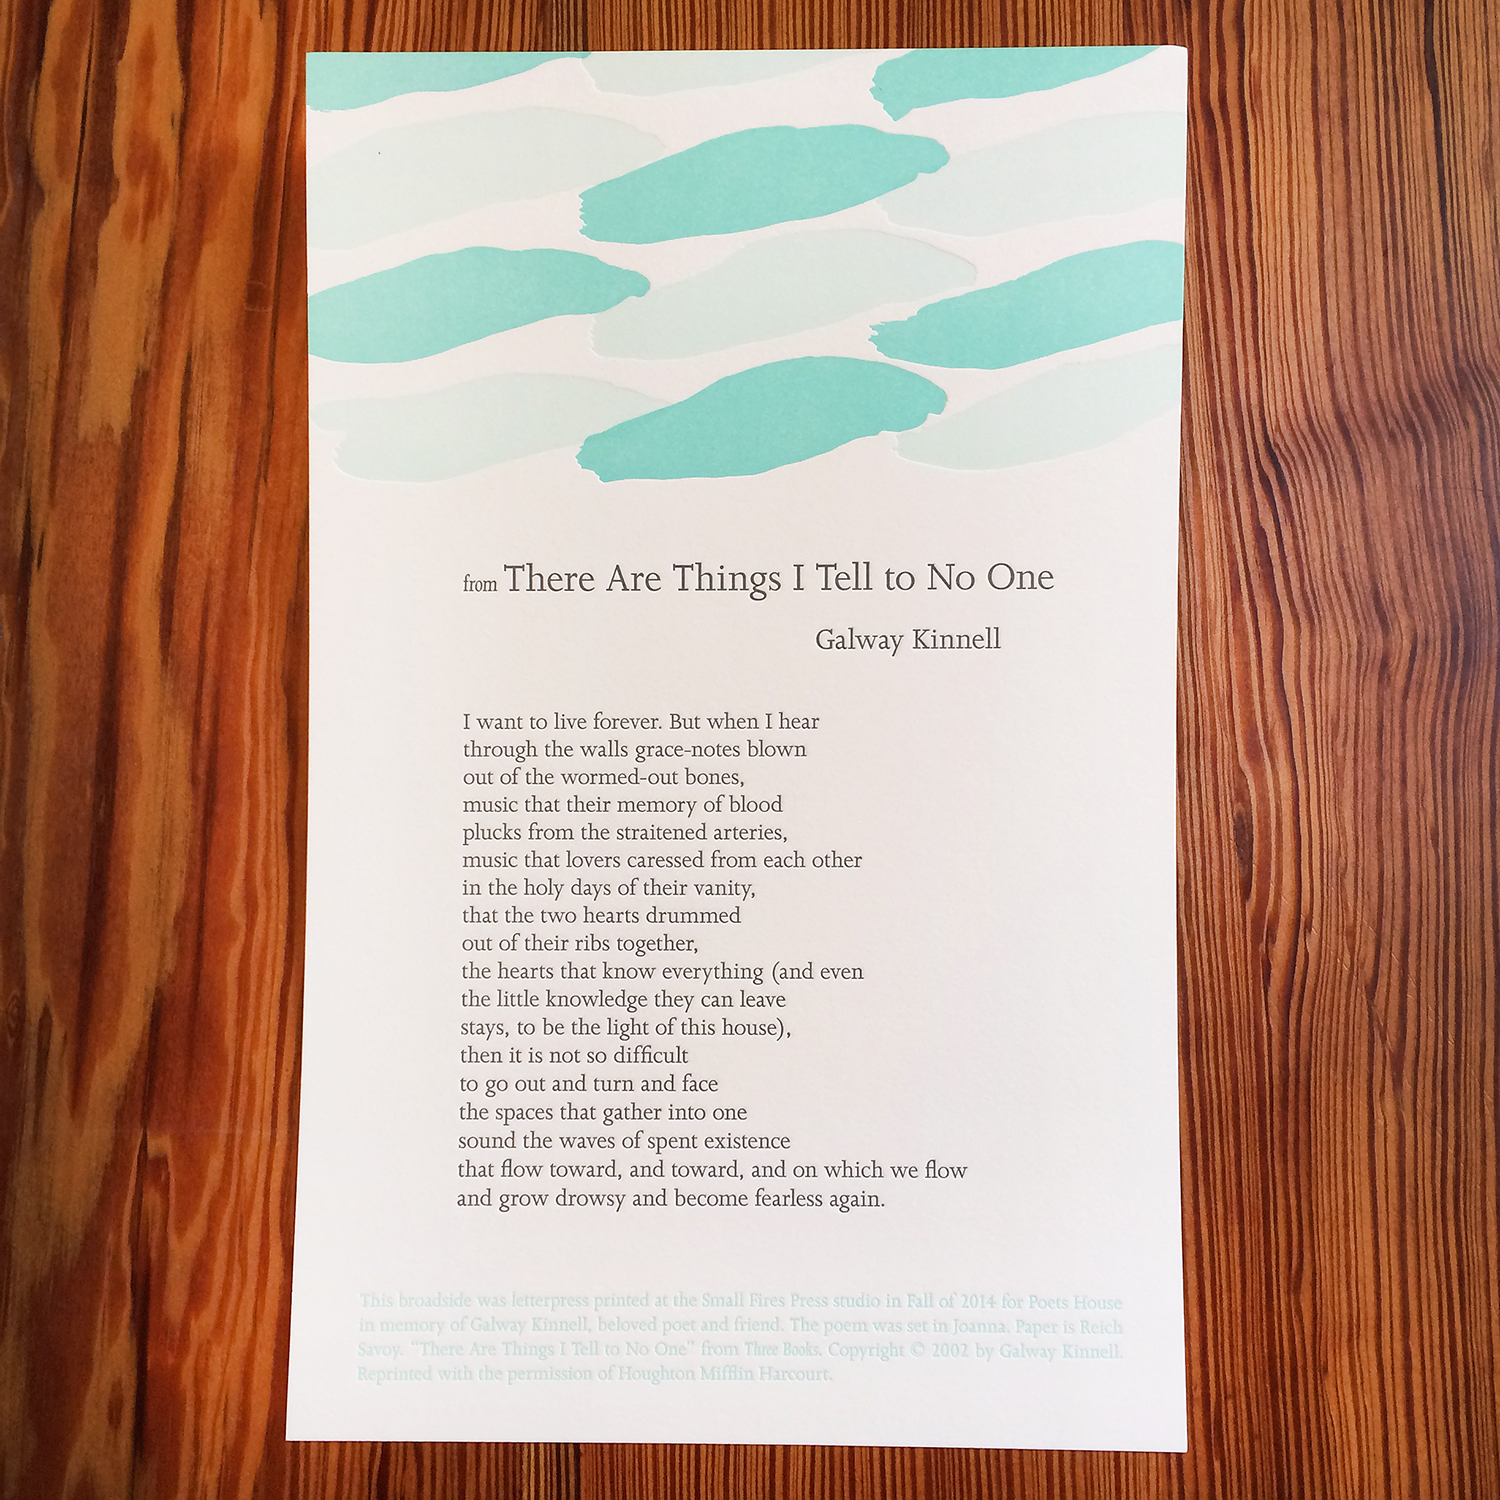 Galway Kinnell - There are Things I Tell to No One - Letterpress - Broadside.jpg